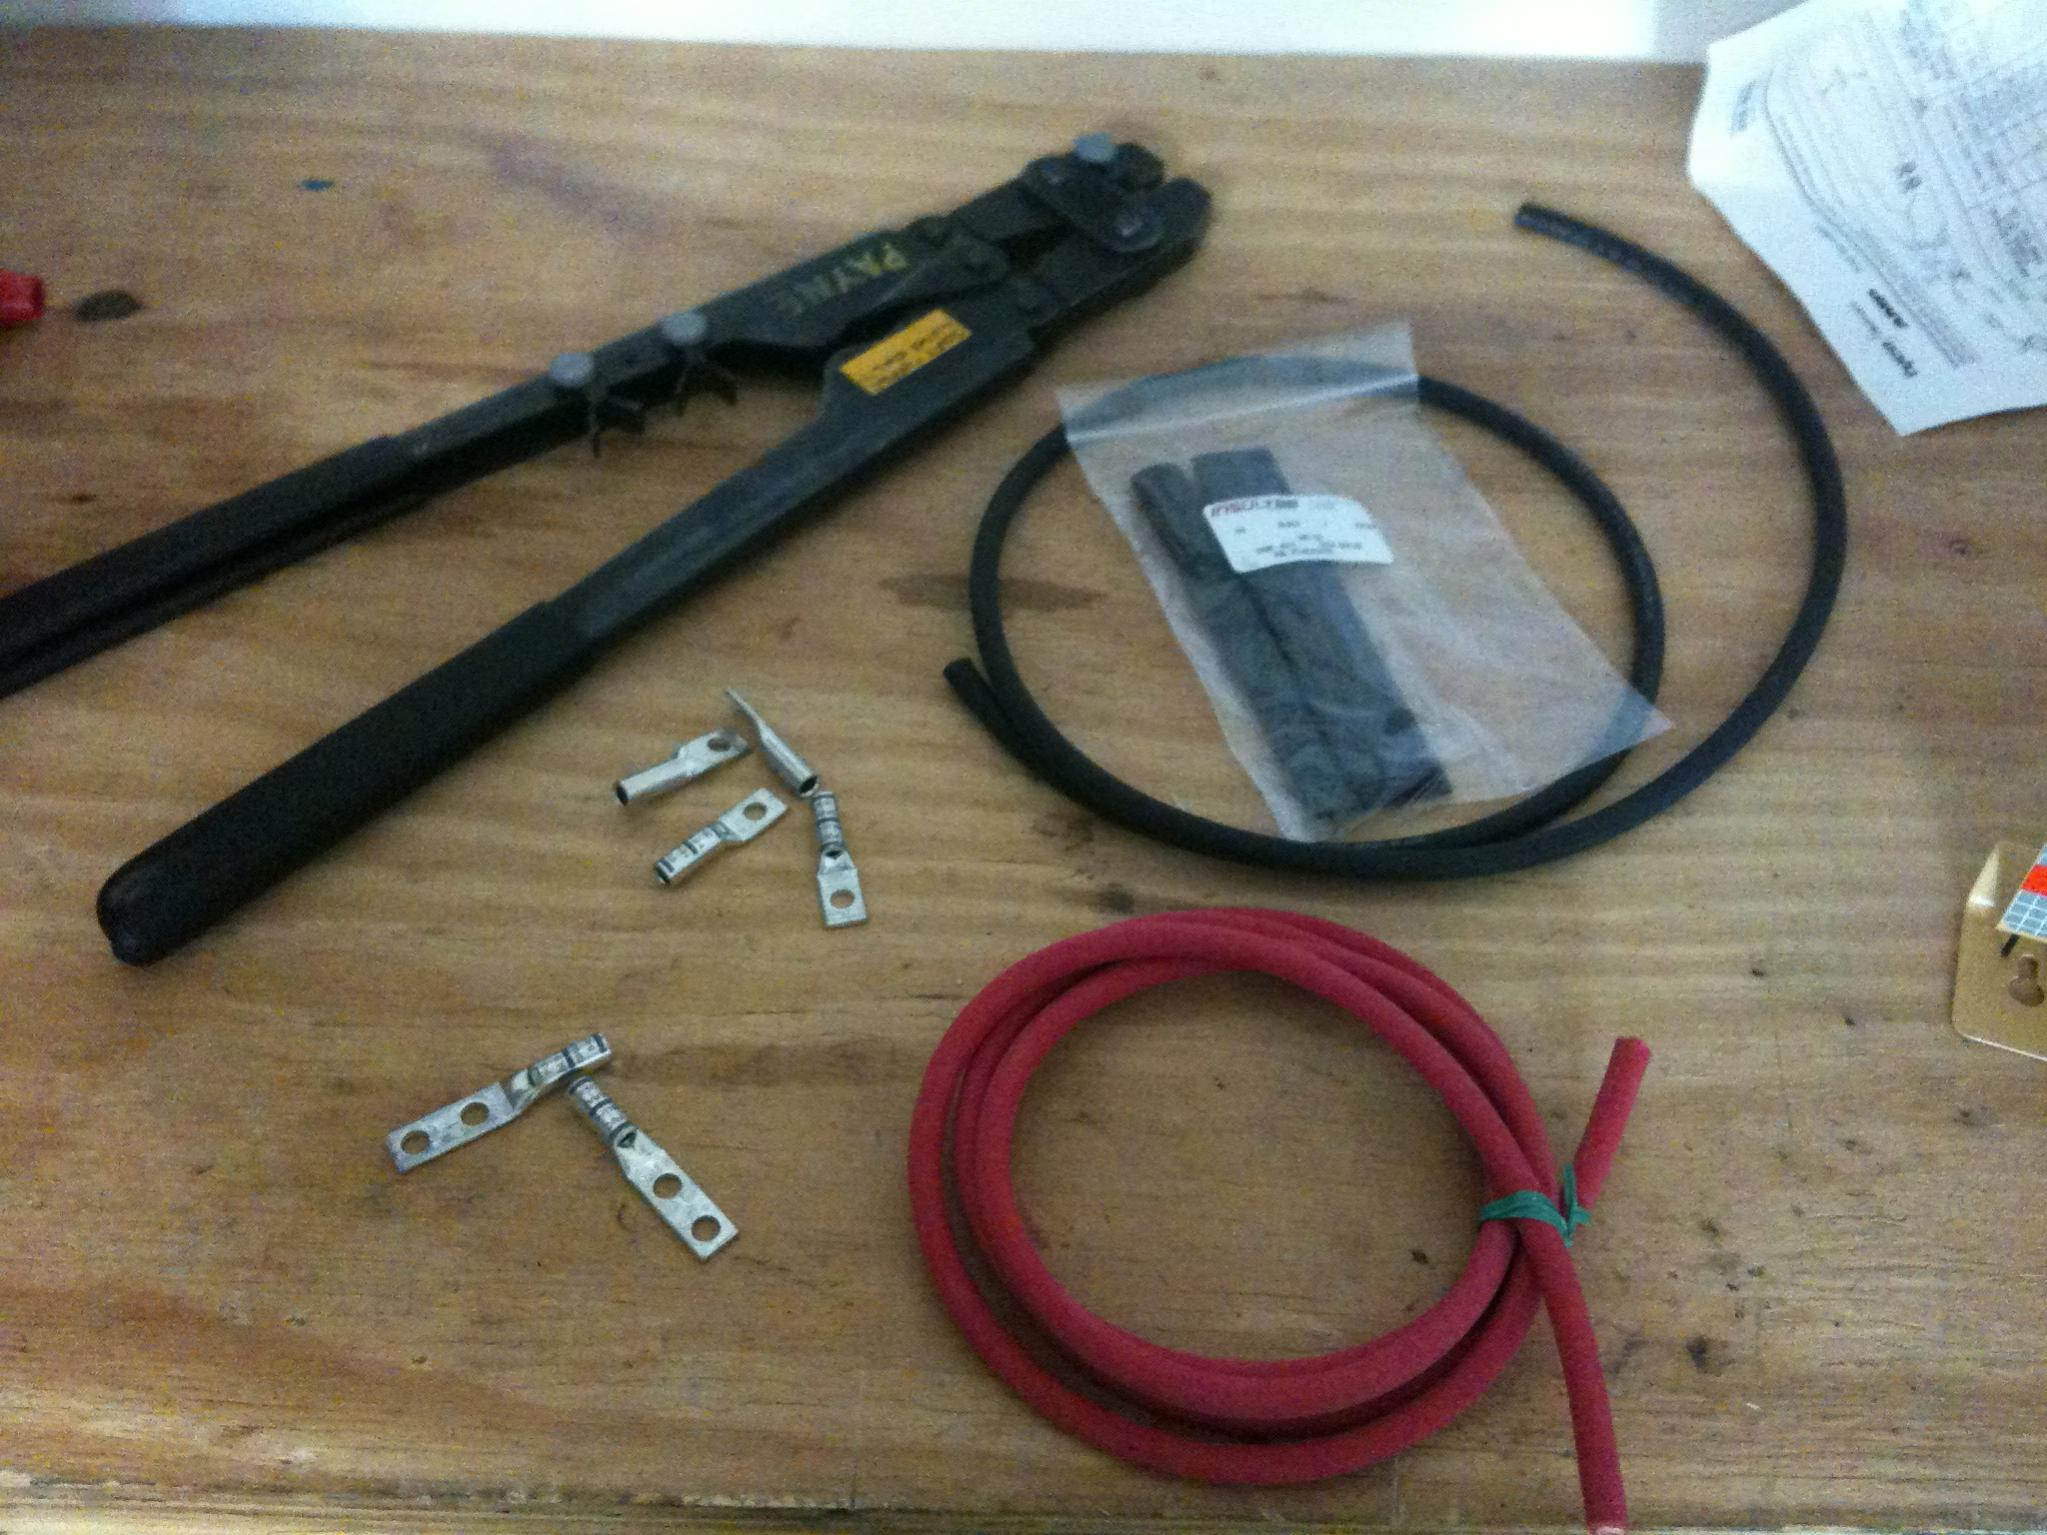 DIY: 696/796/1100 battery cable and battery upgrade-supplies.jpg